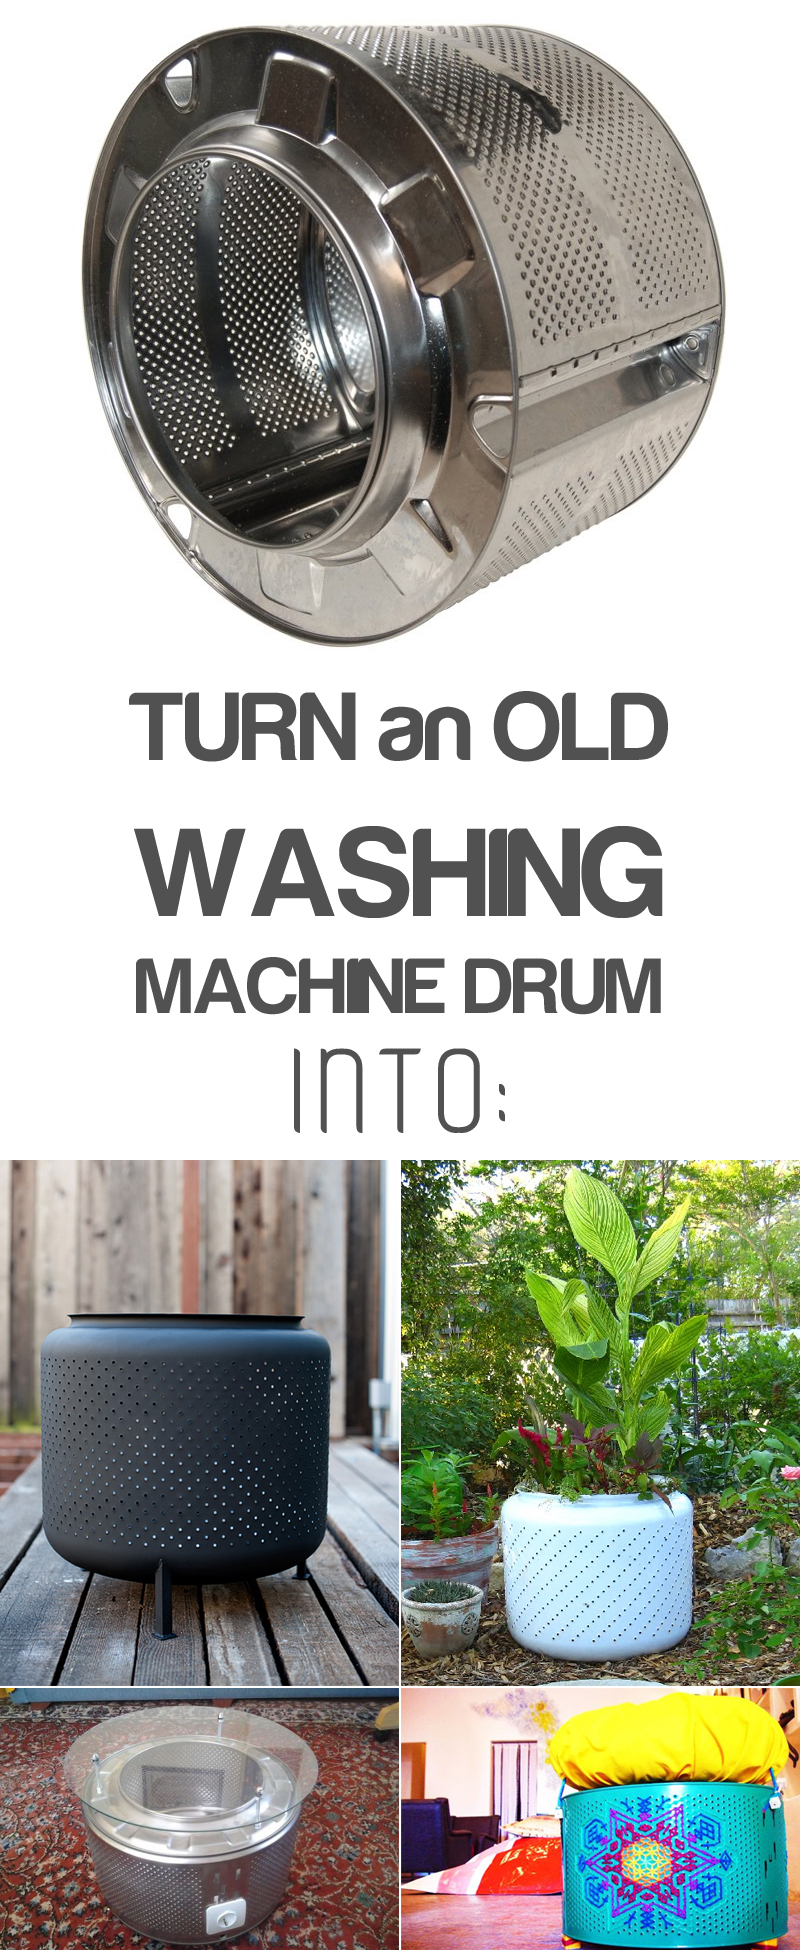 12 Creative Ways to Recycle Washing Machine Drums